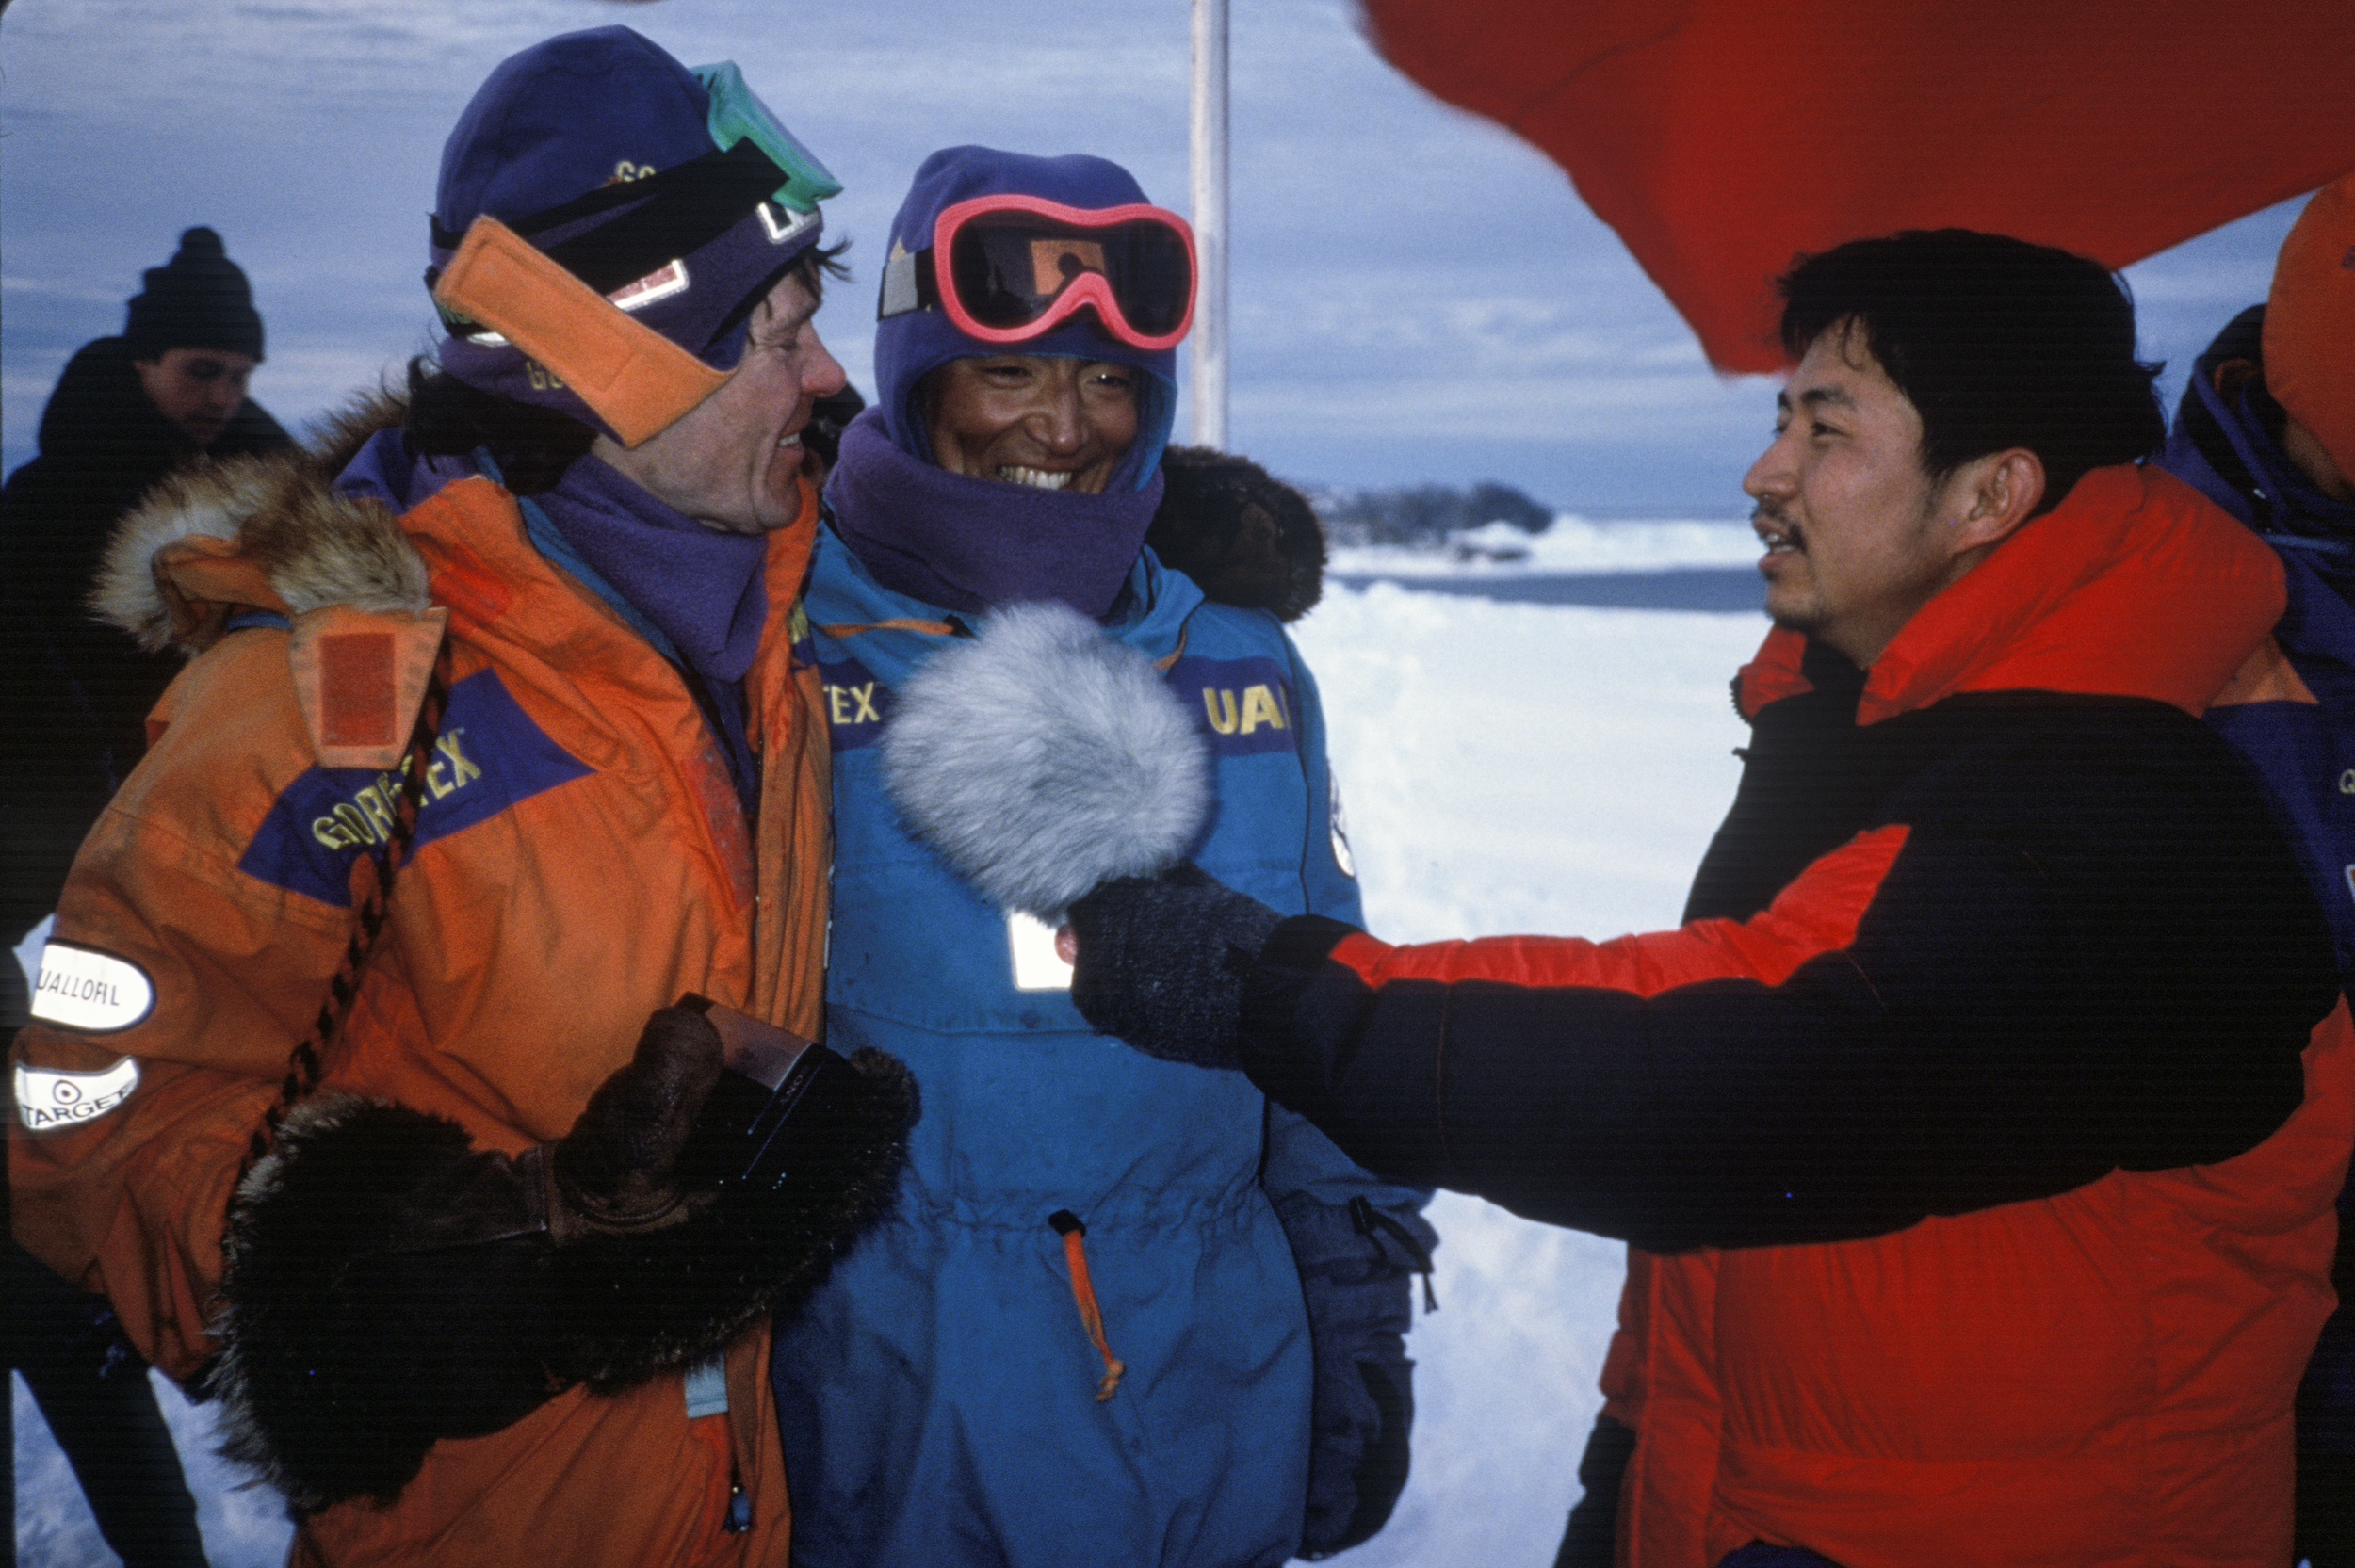 Will and Keizo are interviewed at the finish line by TBS reporter, March 3, 1990. ©Trans-Antarctica, photo by Per Breiehagen